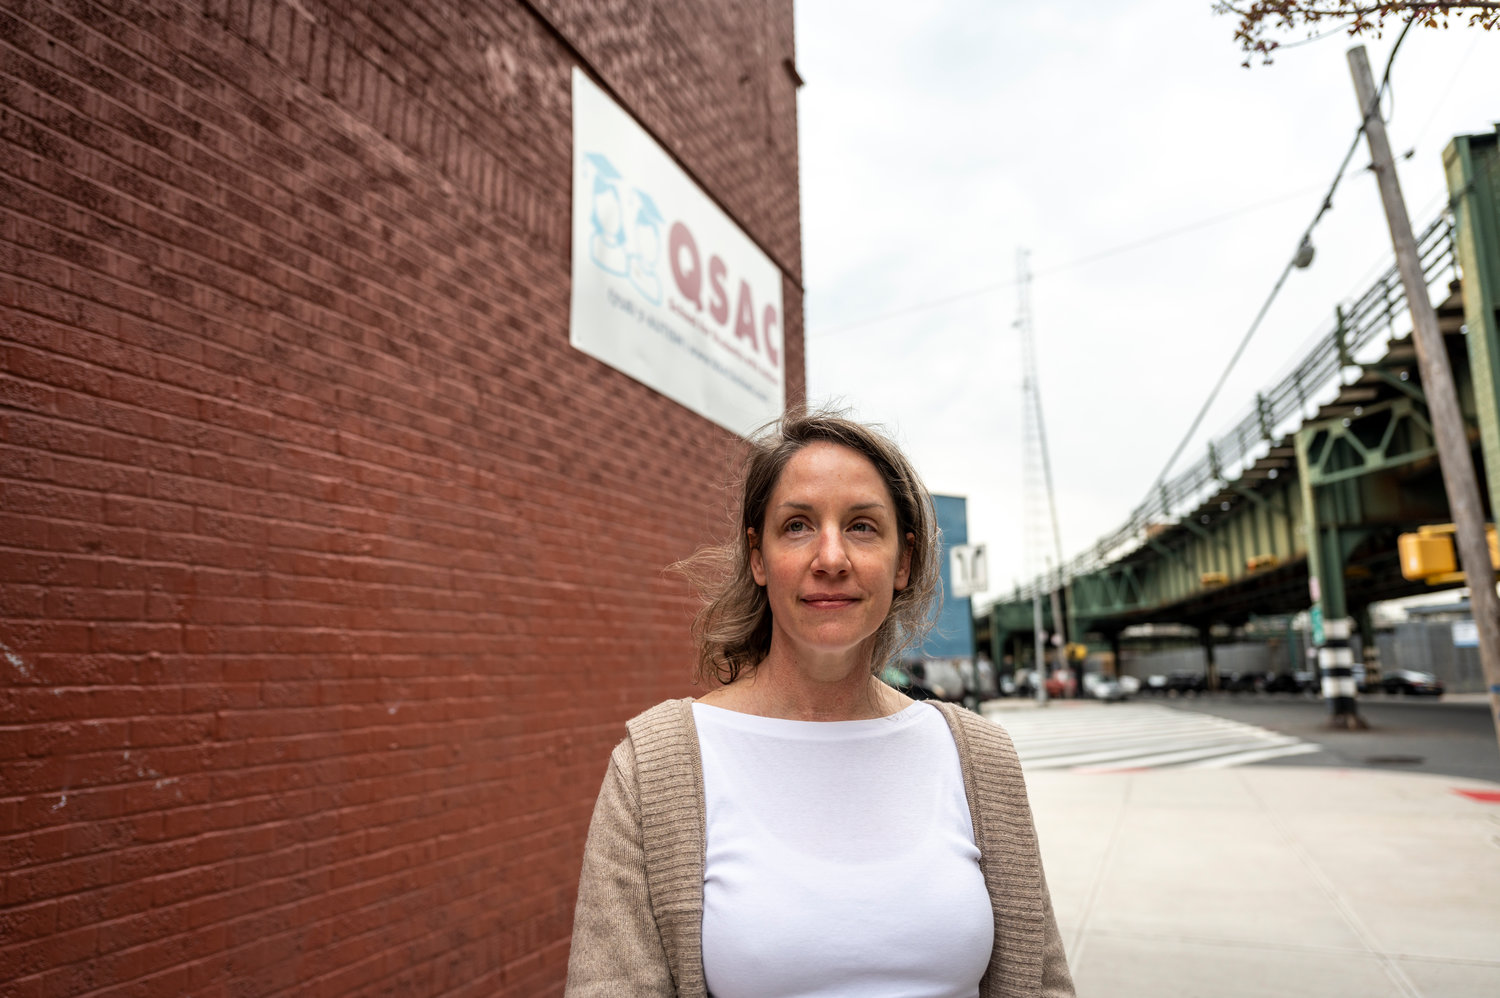 To Susan Silvestri, director of QSAC School for Students with Autism in the Bronx, autism advocacy goes beyond students, needing to represent teachers as well. Access to necessary resources isn't as easy for QSAC as it might be for public schools.